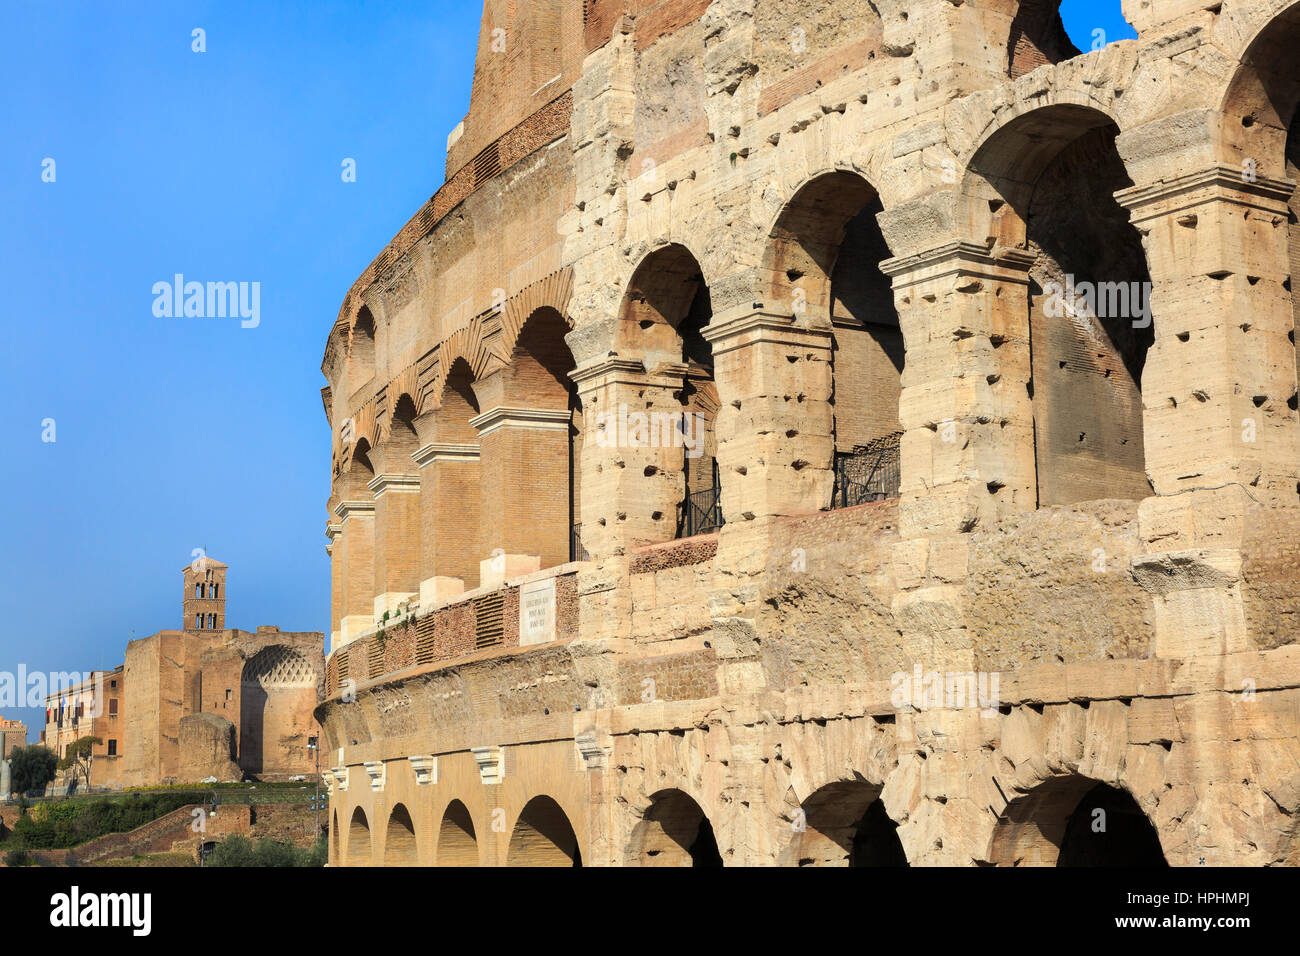 View from the newly repaired and renovated side of The Colosseum towards Palatine Hill,Rome, Italy - Stock Image